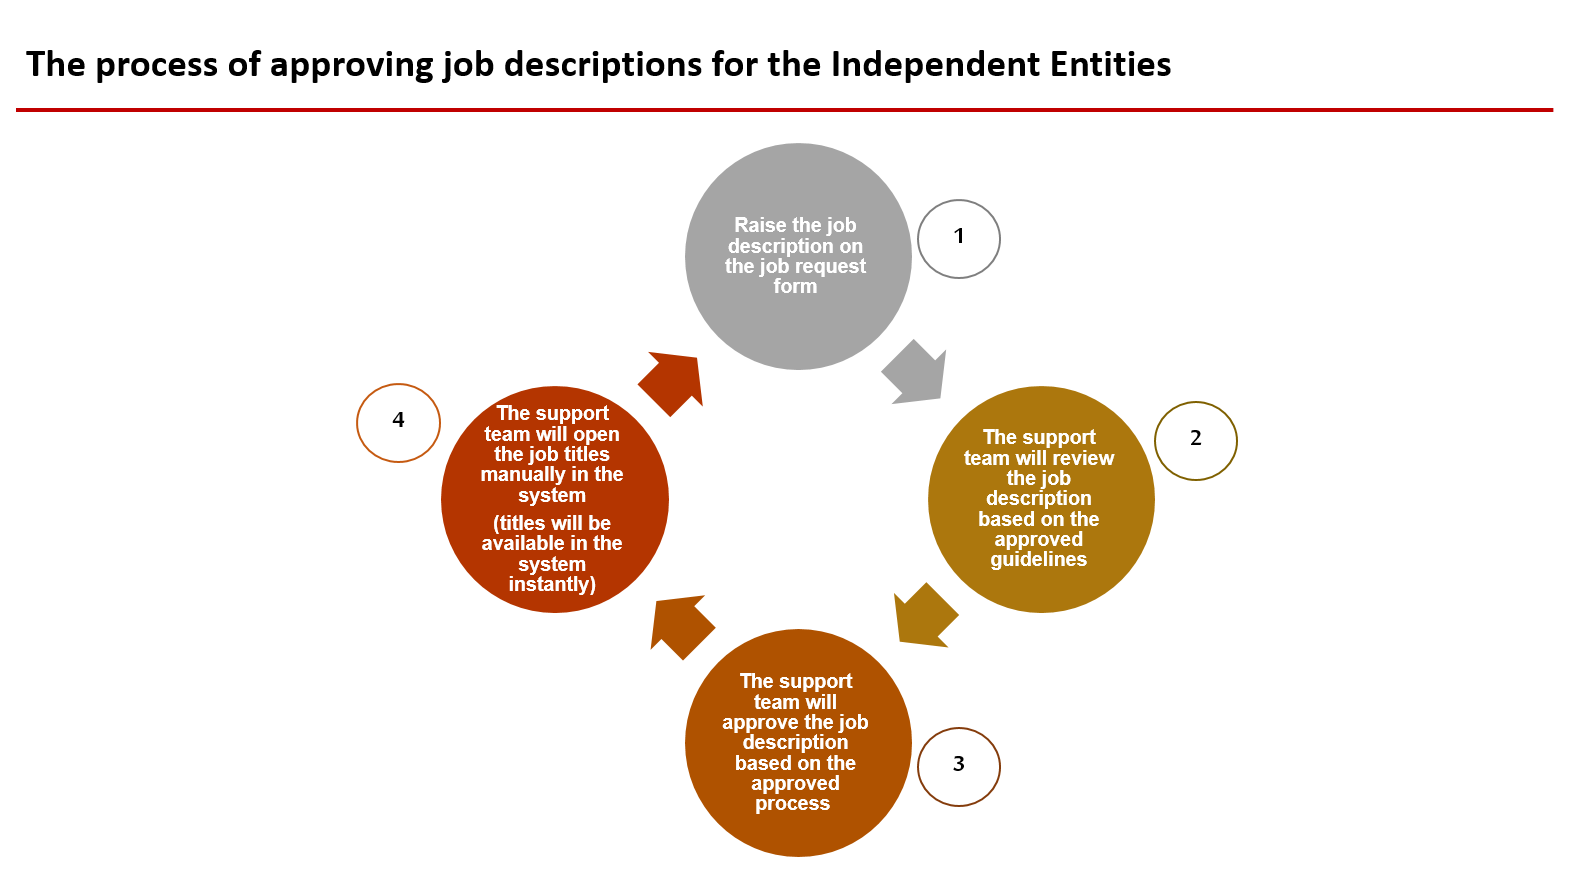 The process of approving job descriptions for the Independent Entities